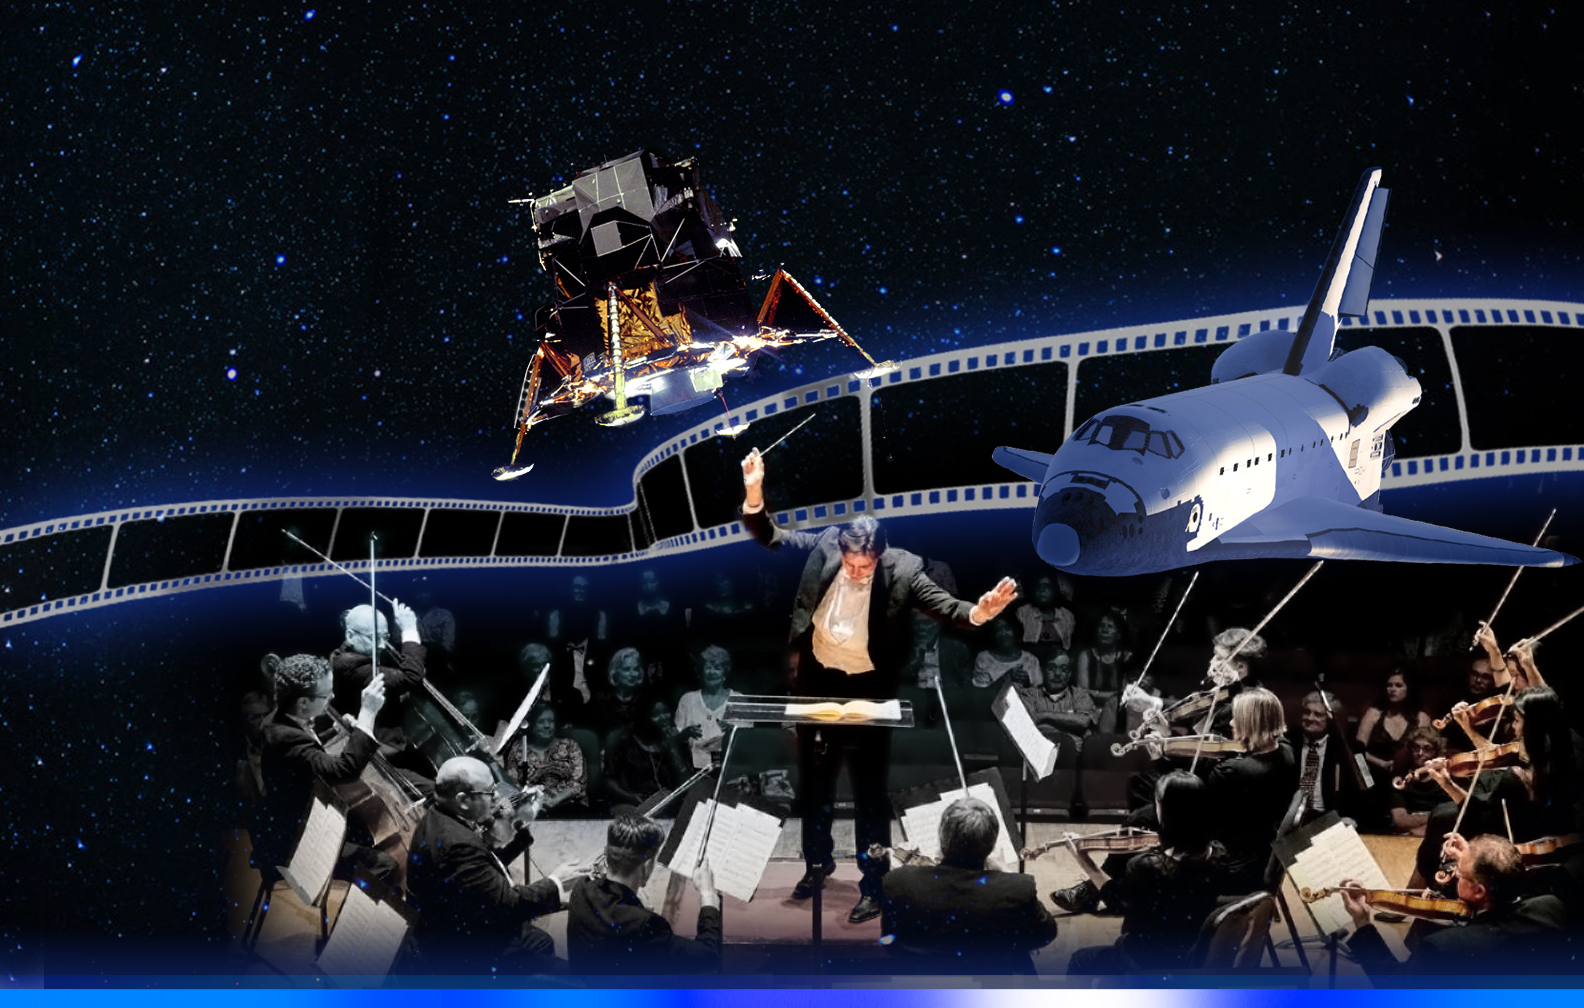 One Small Step tells the story of space flight with music of Aaron Copland and NASA footage.